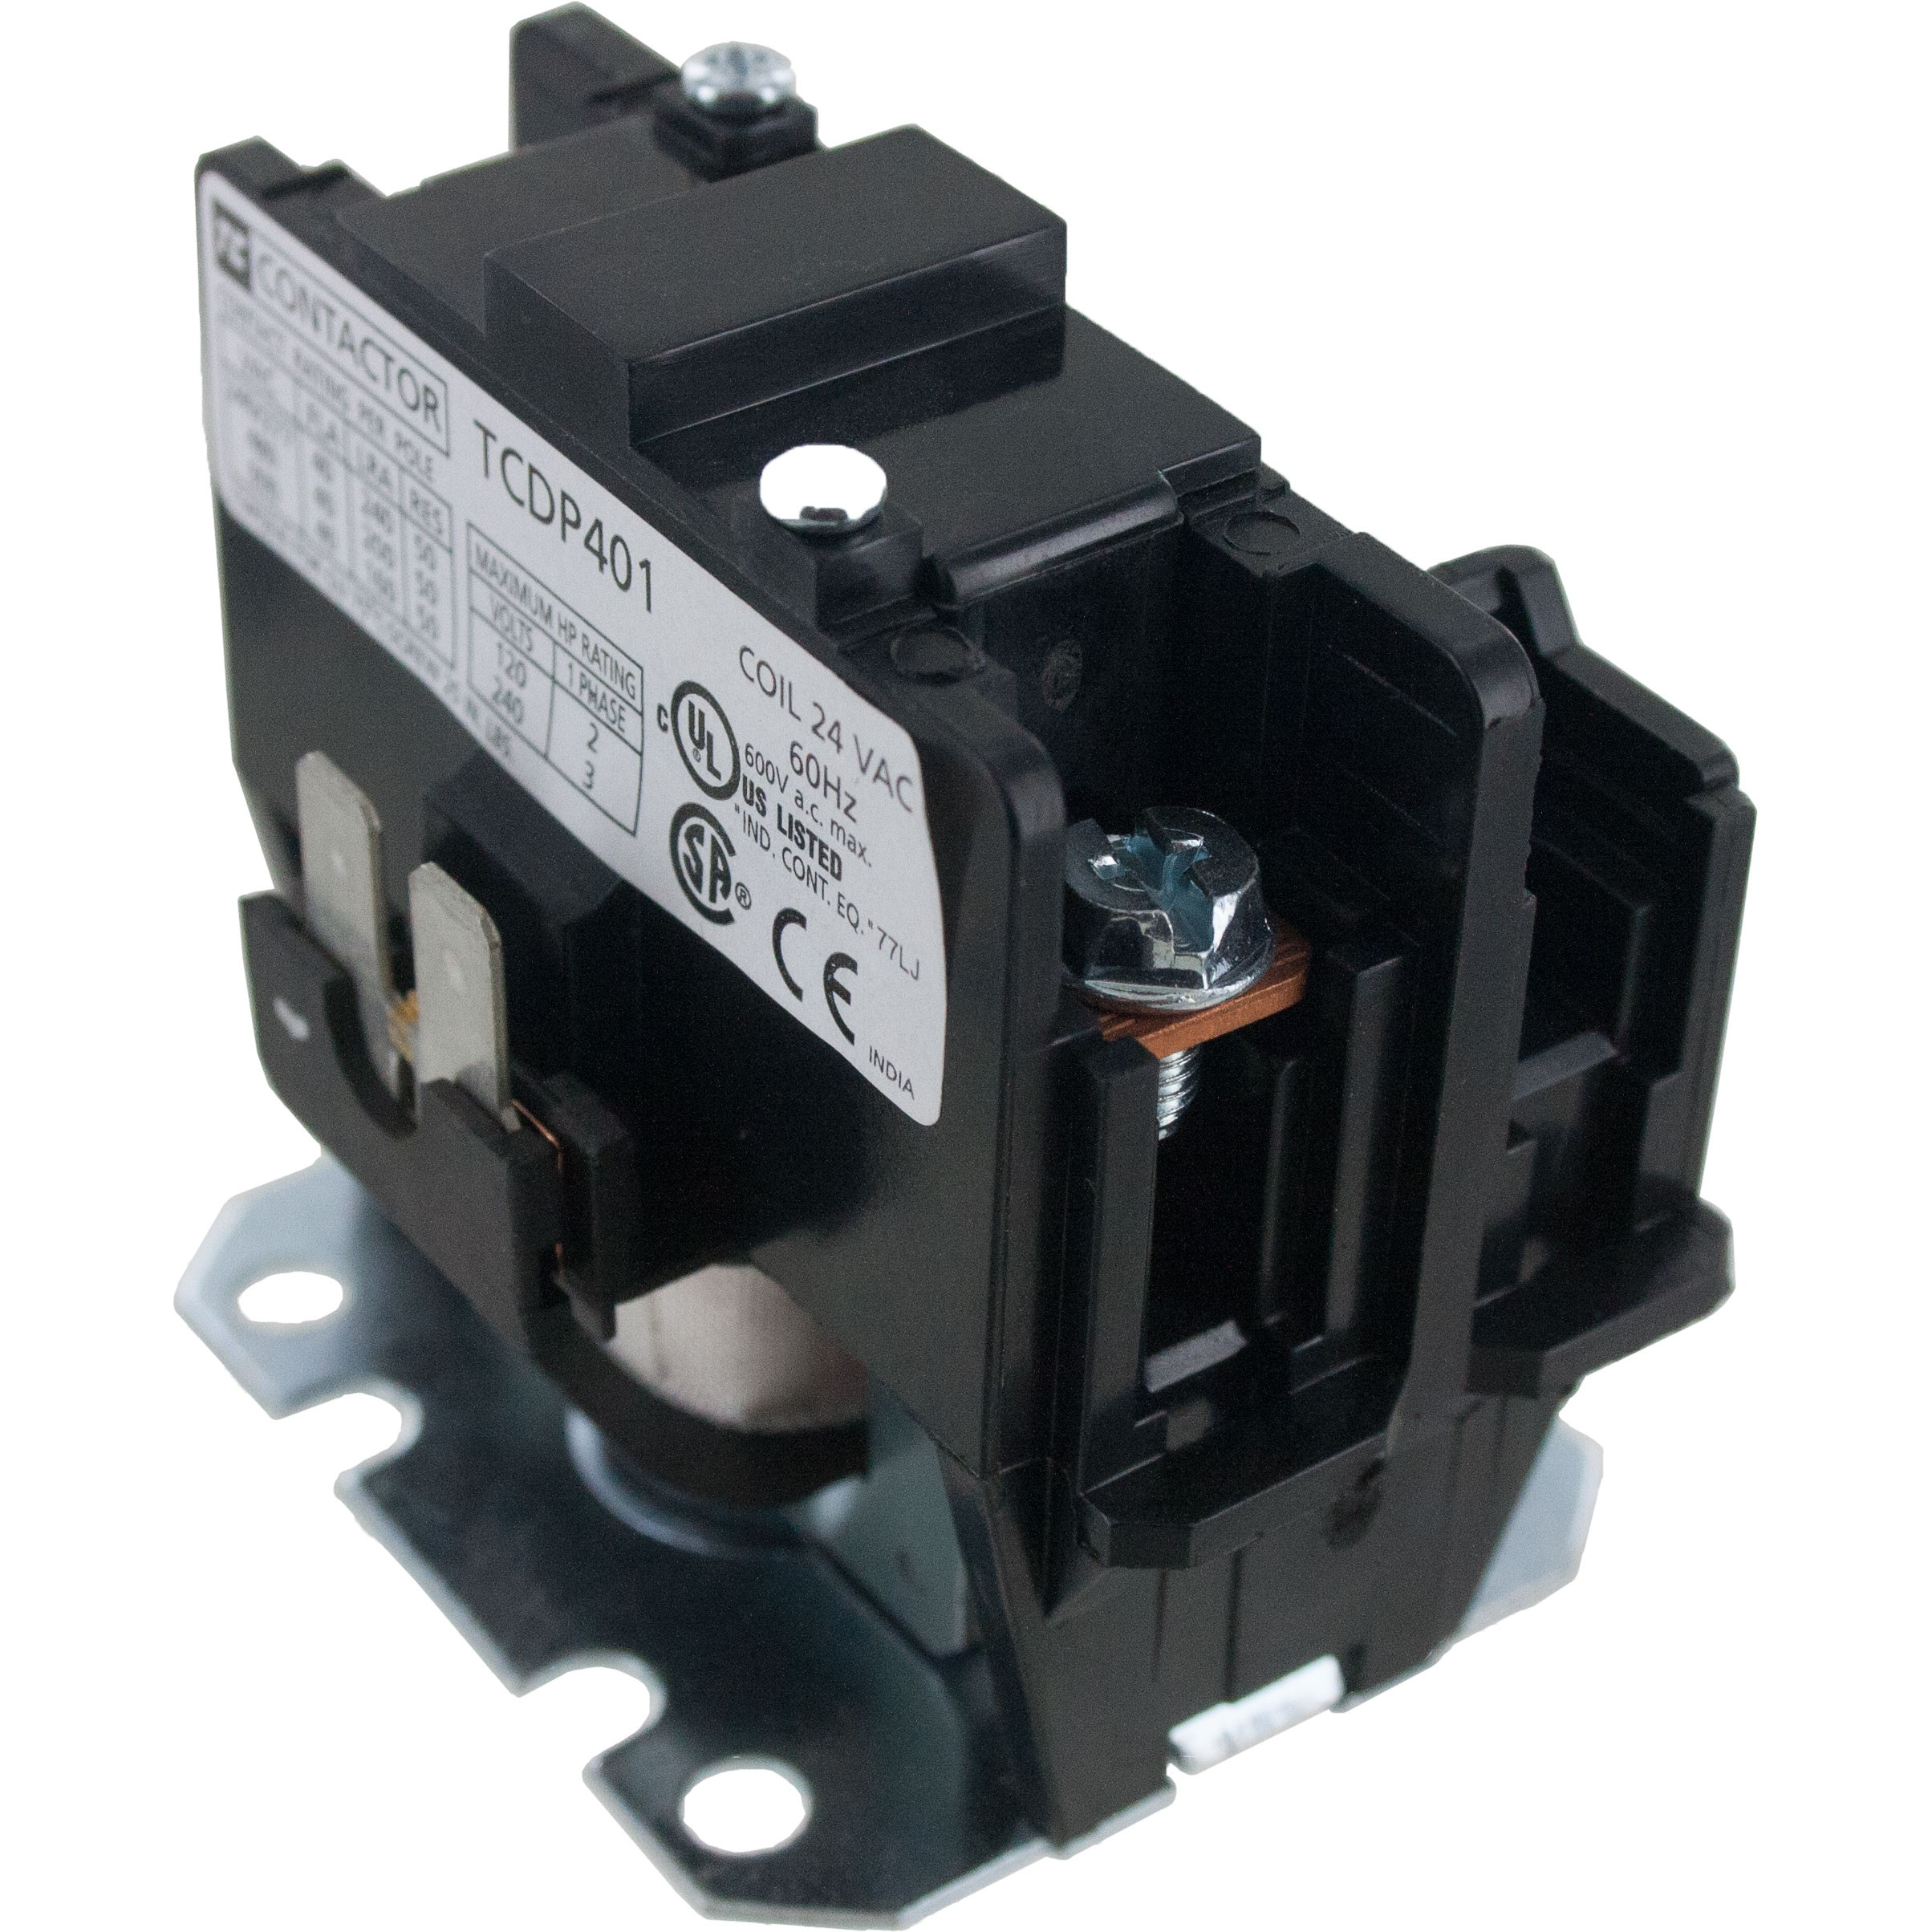 1 Pole Contactor 40 Amp 120VAC Coil